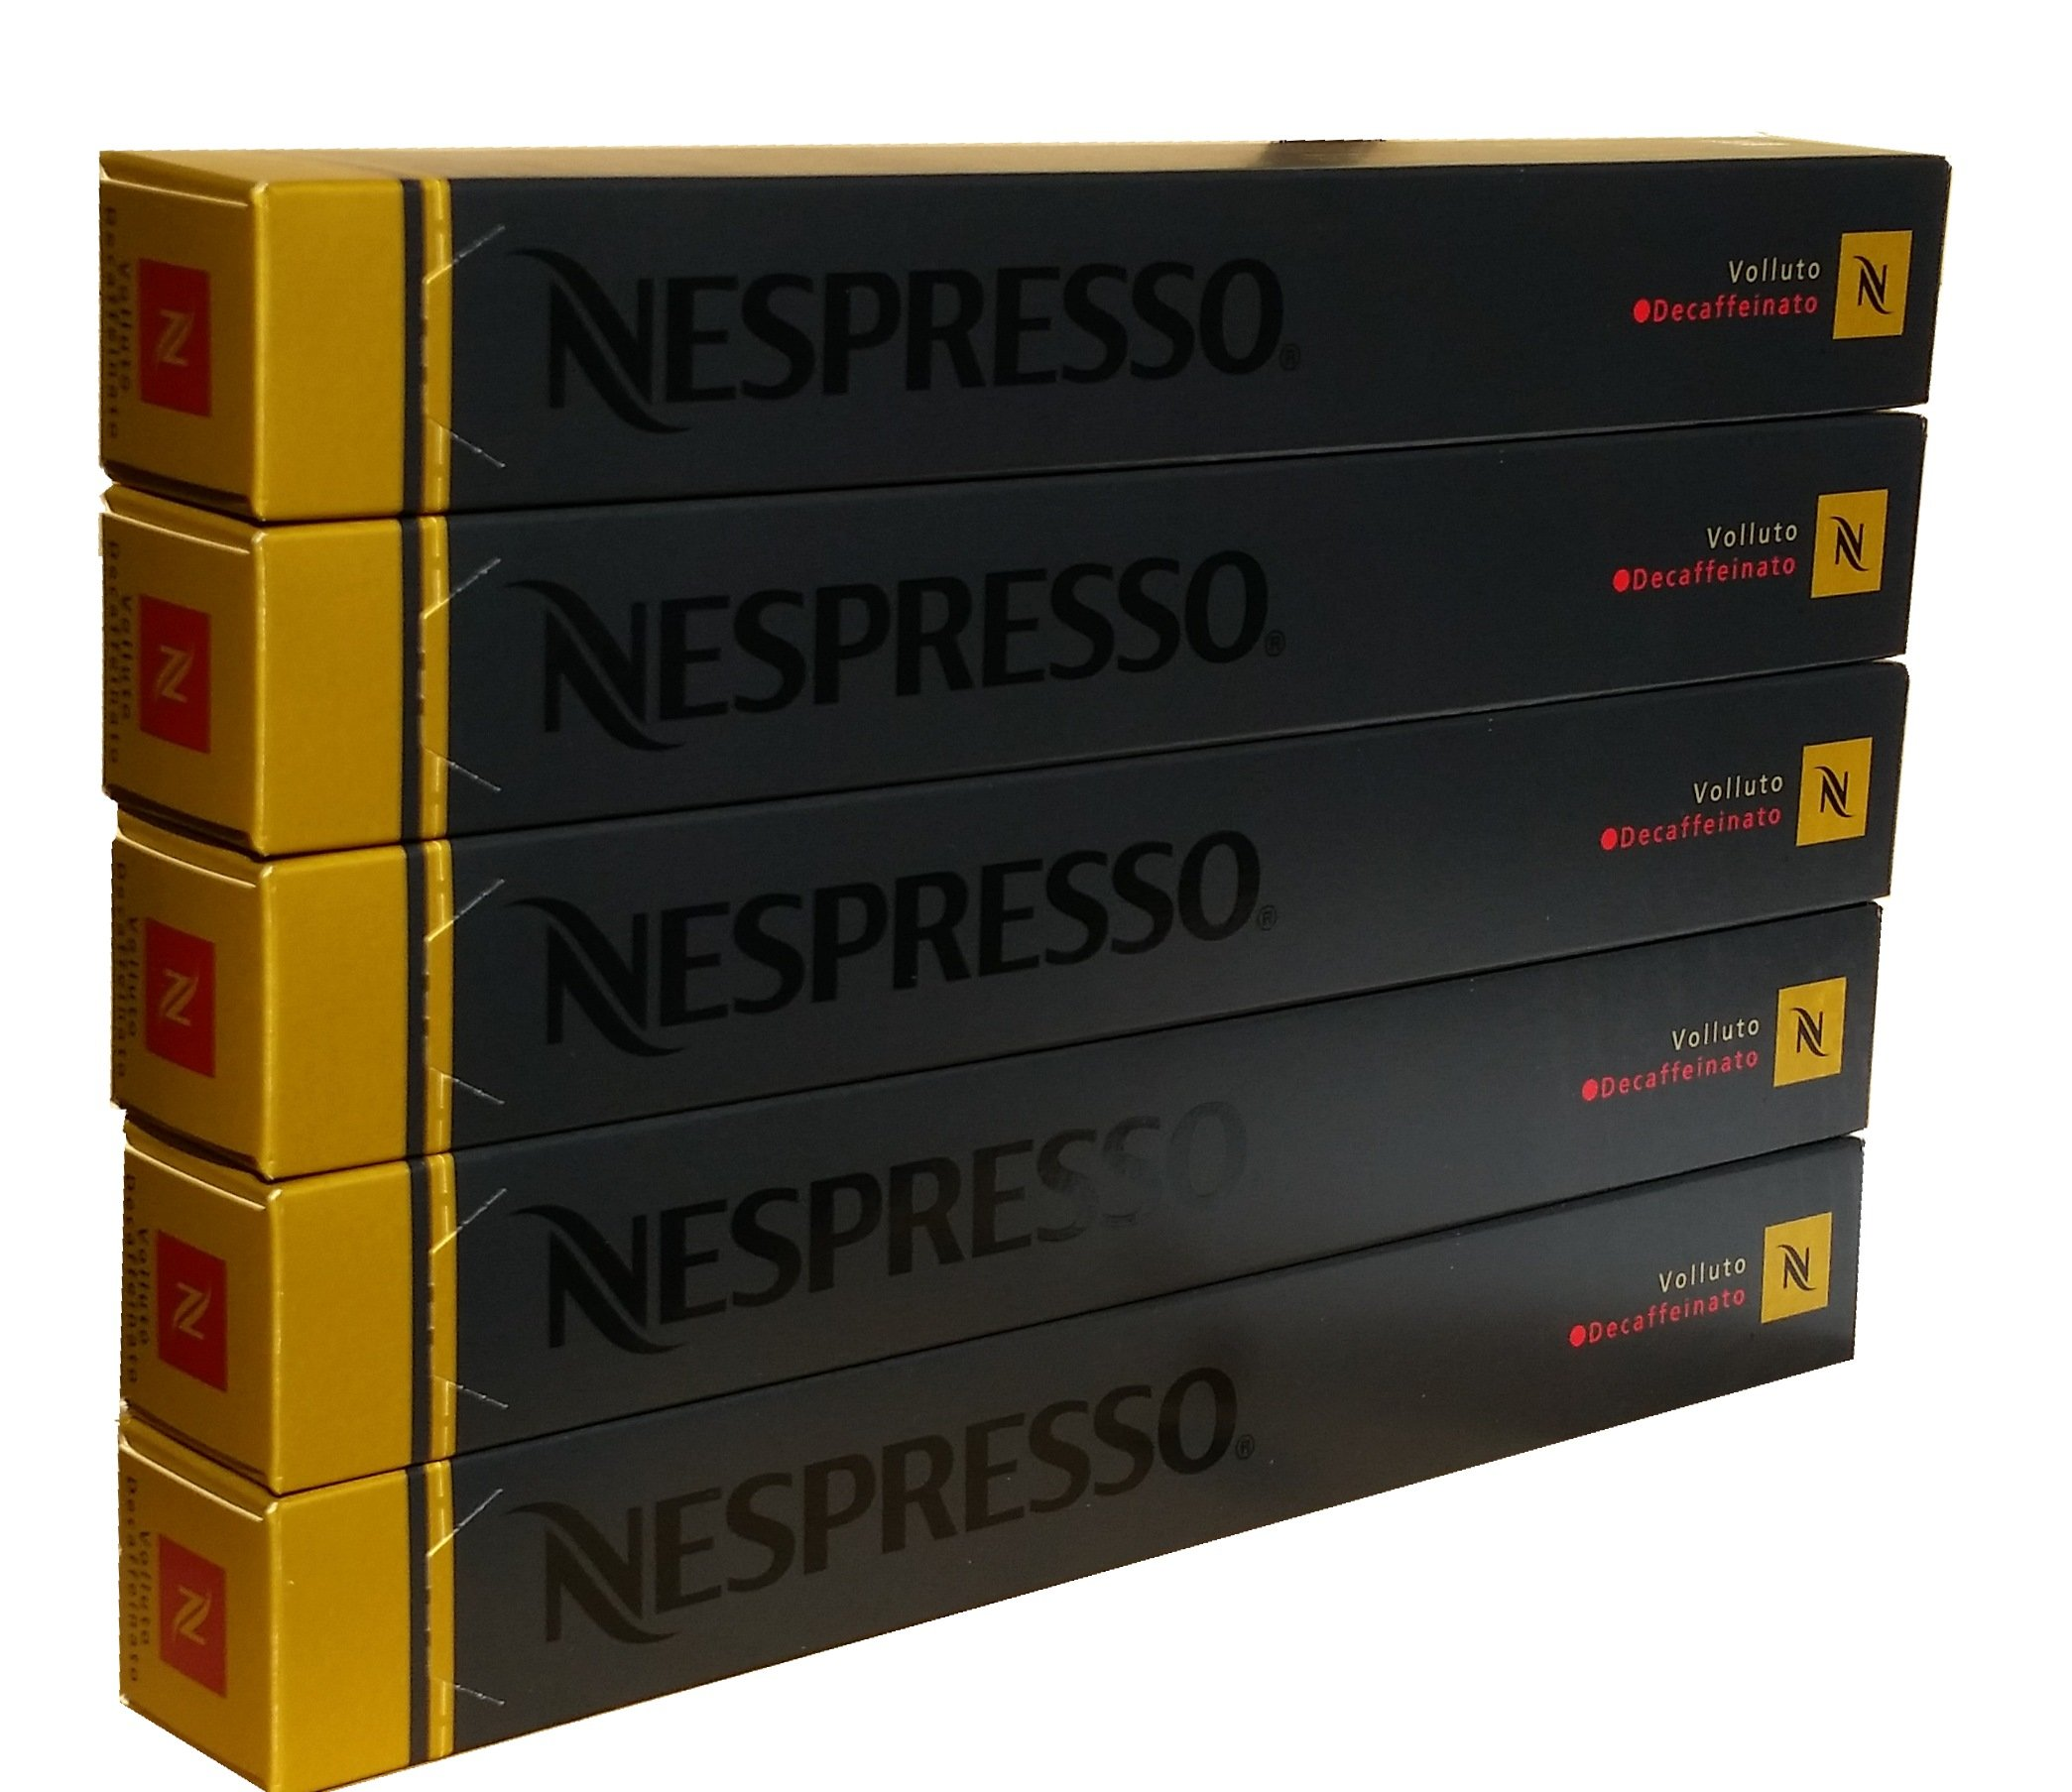 Nespresso Original Decaffeinato coffee pods and capsules (a balanced flavour, biscuity notes, fruit notes coffee with aromas of fresh fruit and petals, nutty)